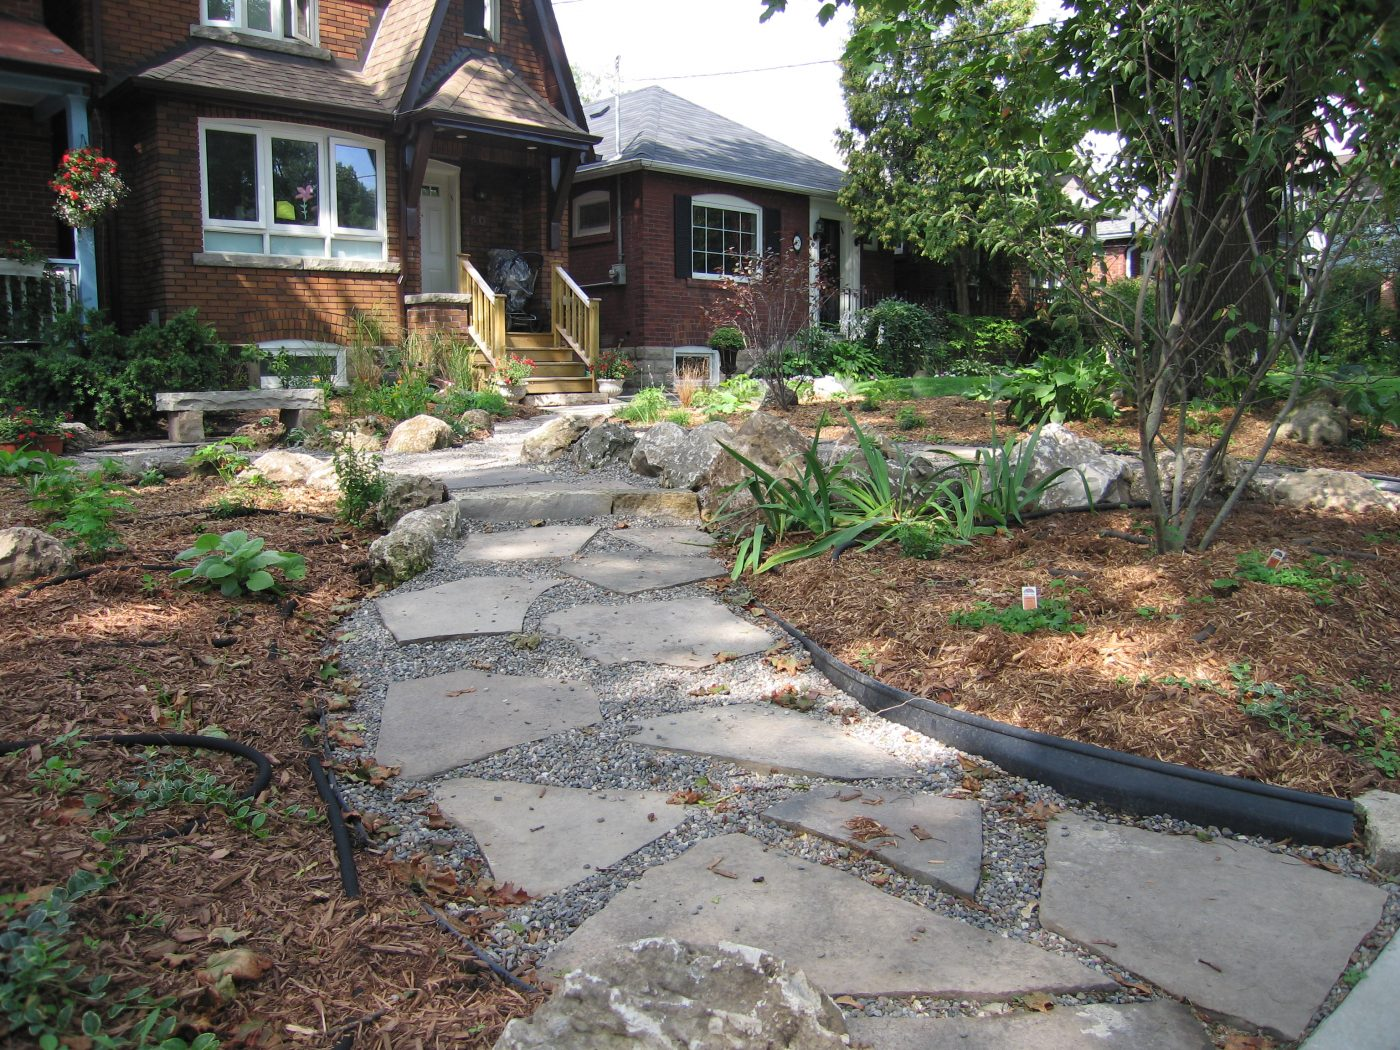 Landscape Construction- Illiatovich I